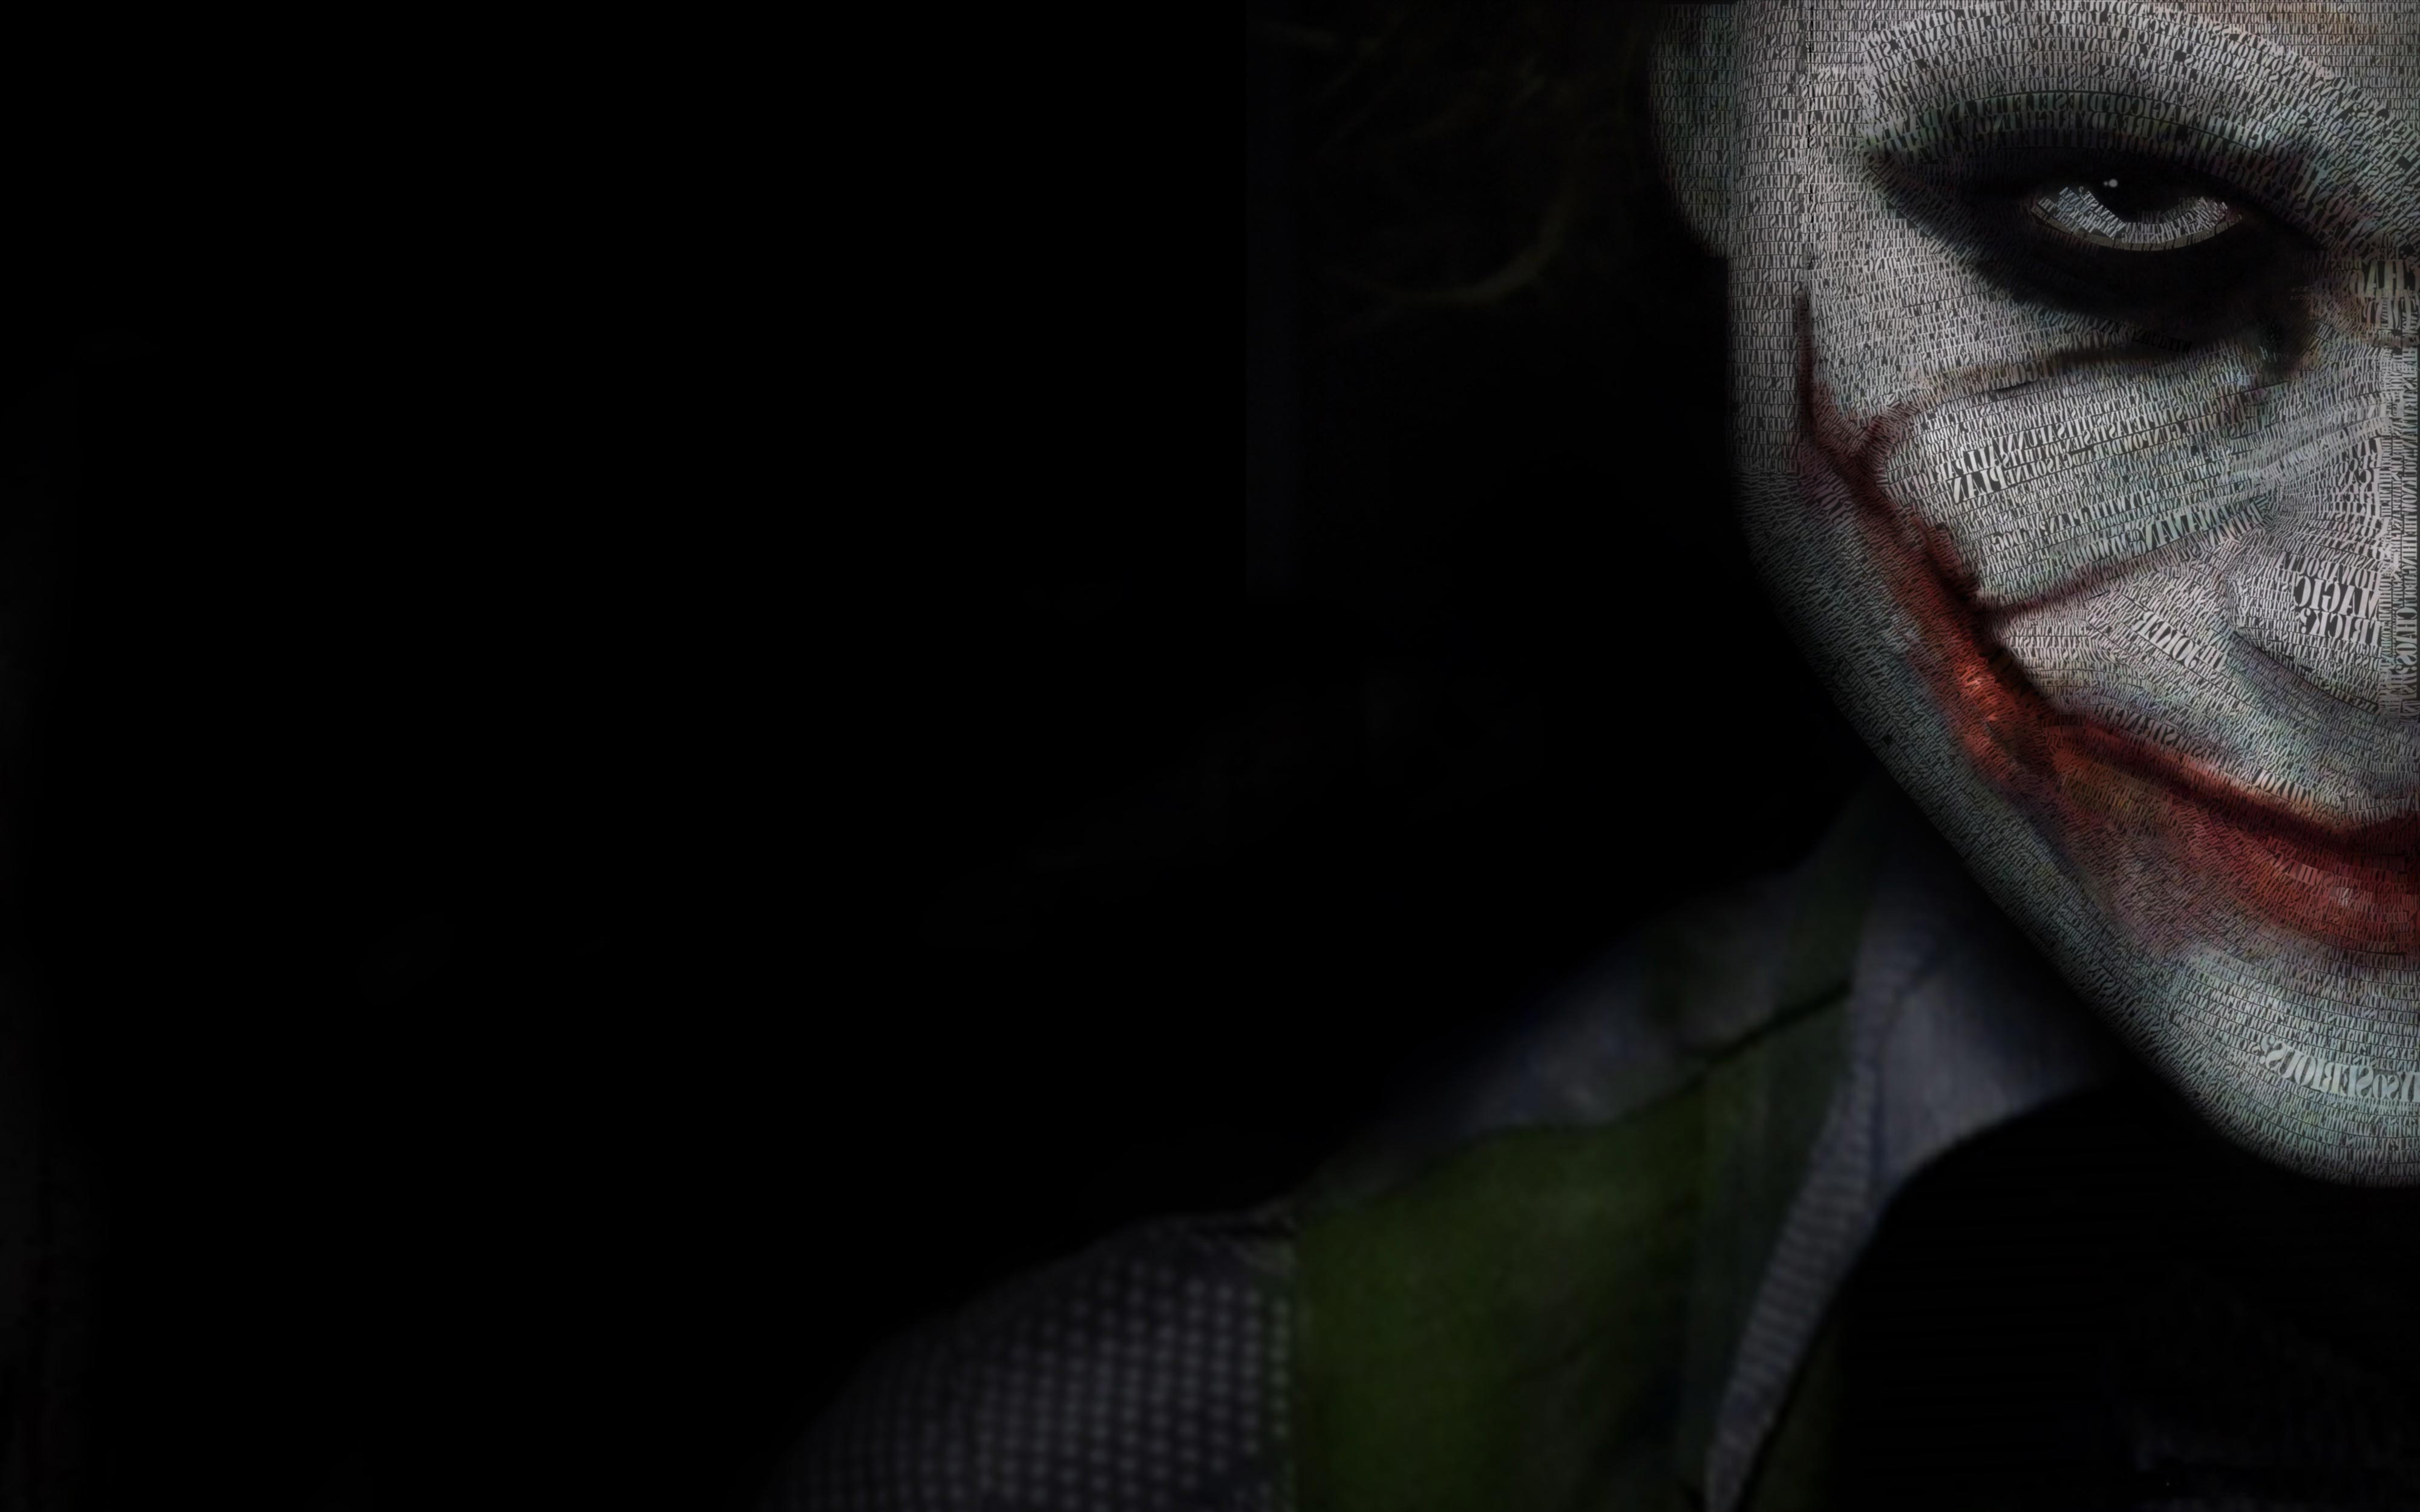 Joker Wallpaper 4000x2500